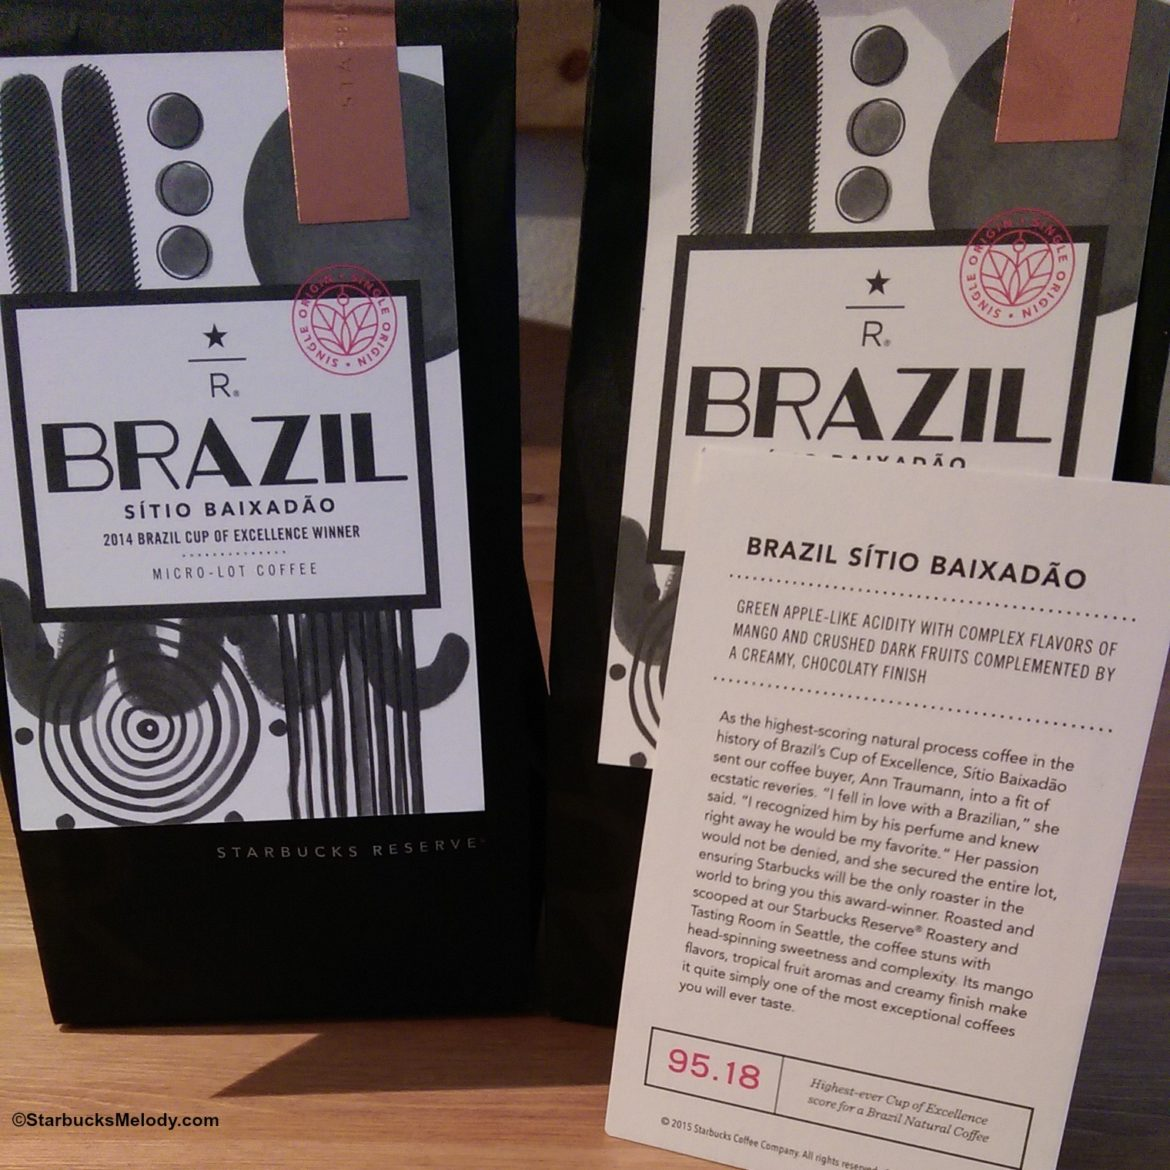 Starbucks offers its first Cup of Excellence winning coffee: Brazil Sitio Baixadao